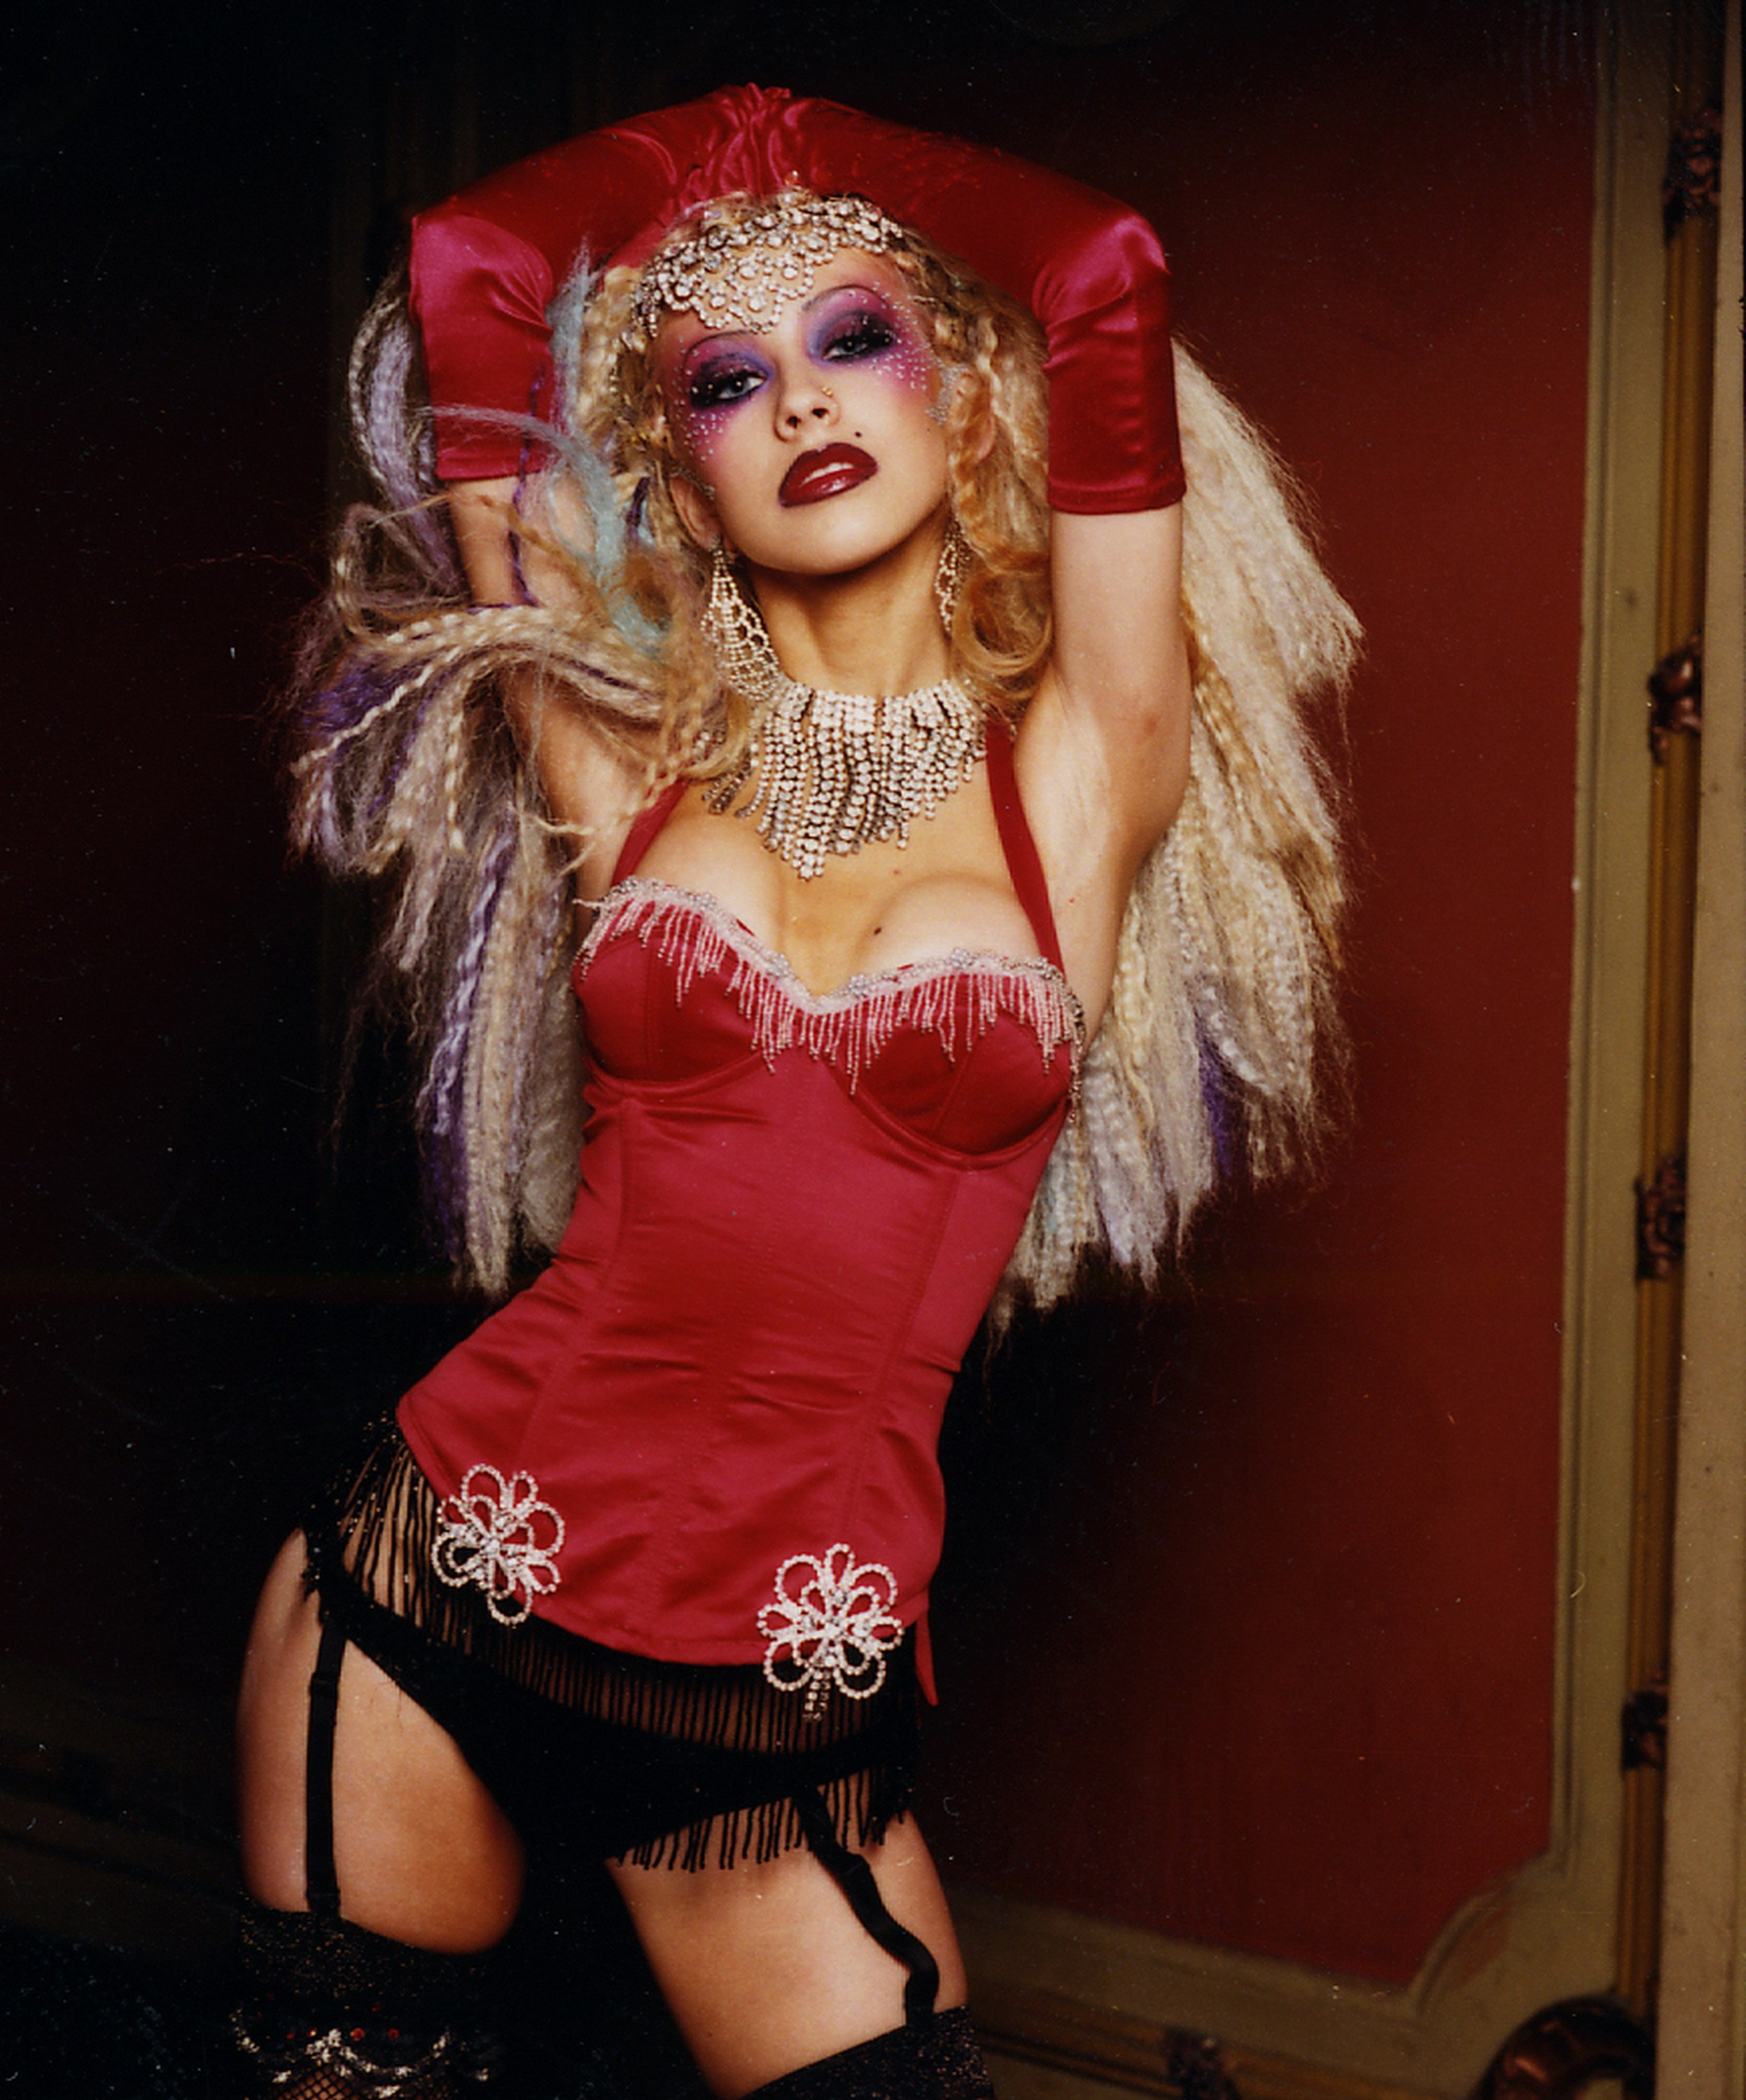 89882_Christina_Aguilera-014477_Lady_Marmalade_shoot_122_1196lo.jpg